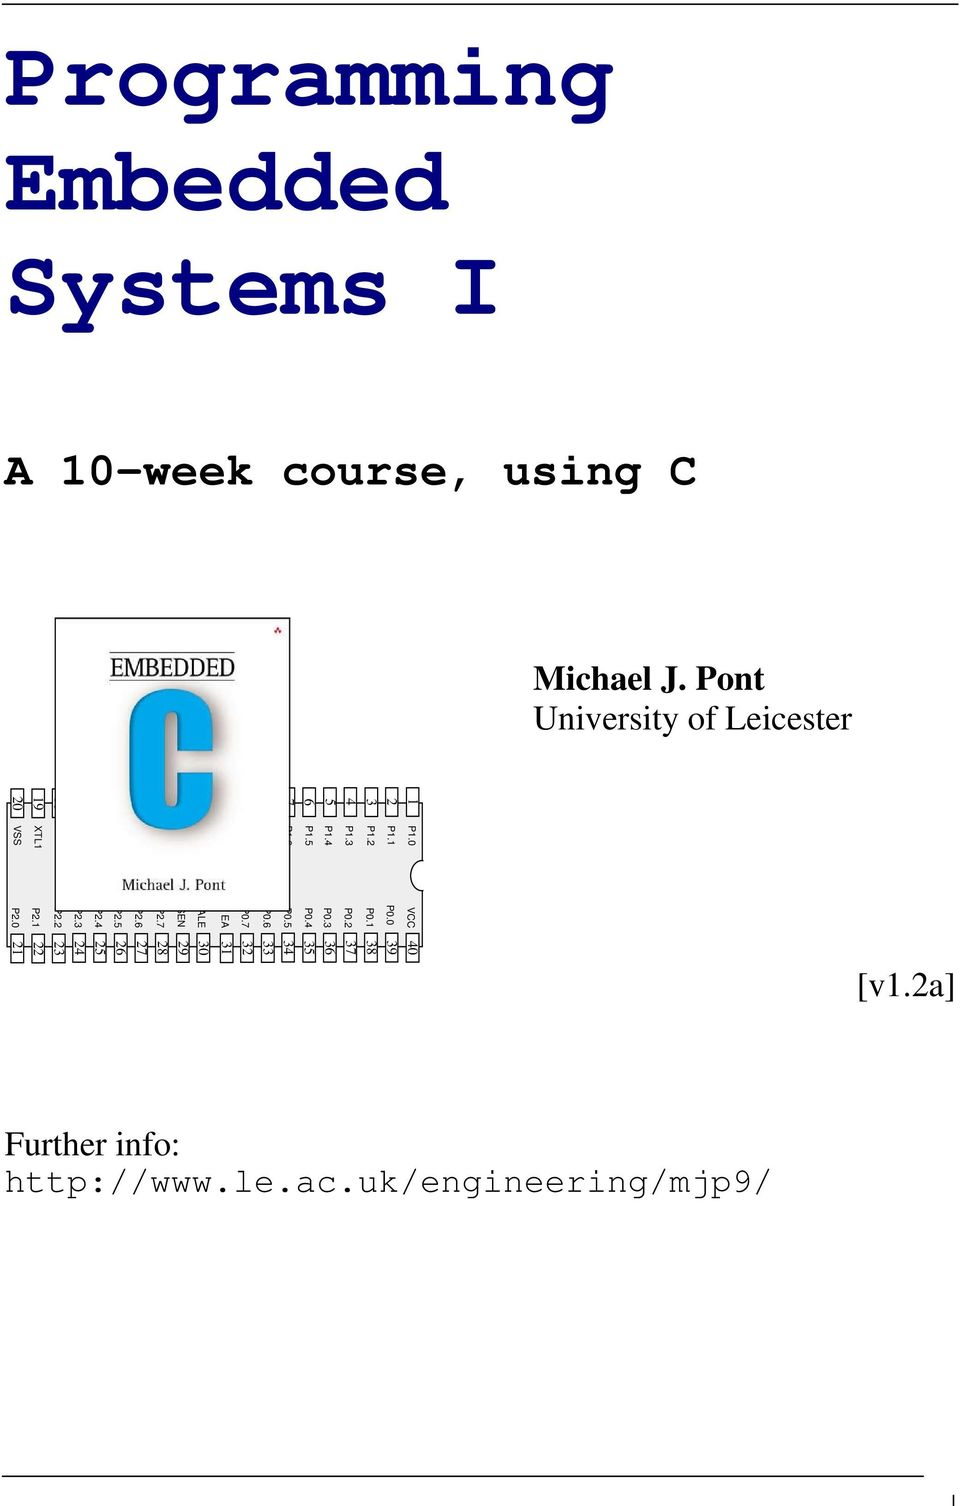 Programming Embedded Systems I Pdf Bs2p Microcontoller And A Gps Receiver Circuit 7 Rst P30 P31 P32 P33 P3